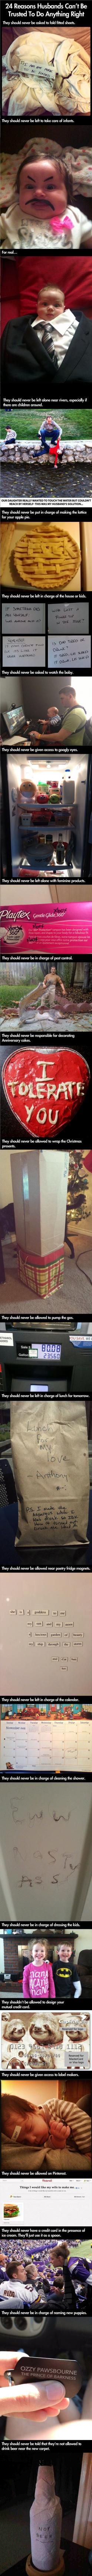 pinterest: maryfrost_: Giggle, Reasons Husbands, Credit Cards, Funny Stuff, 24 Reasons, Funny Husband, So Funny, Husbands Can T